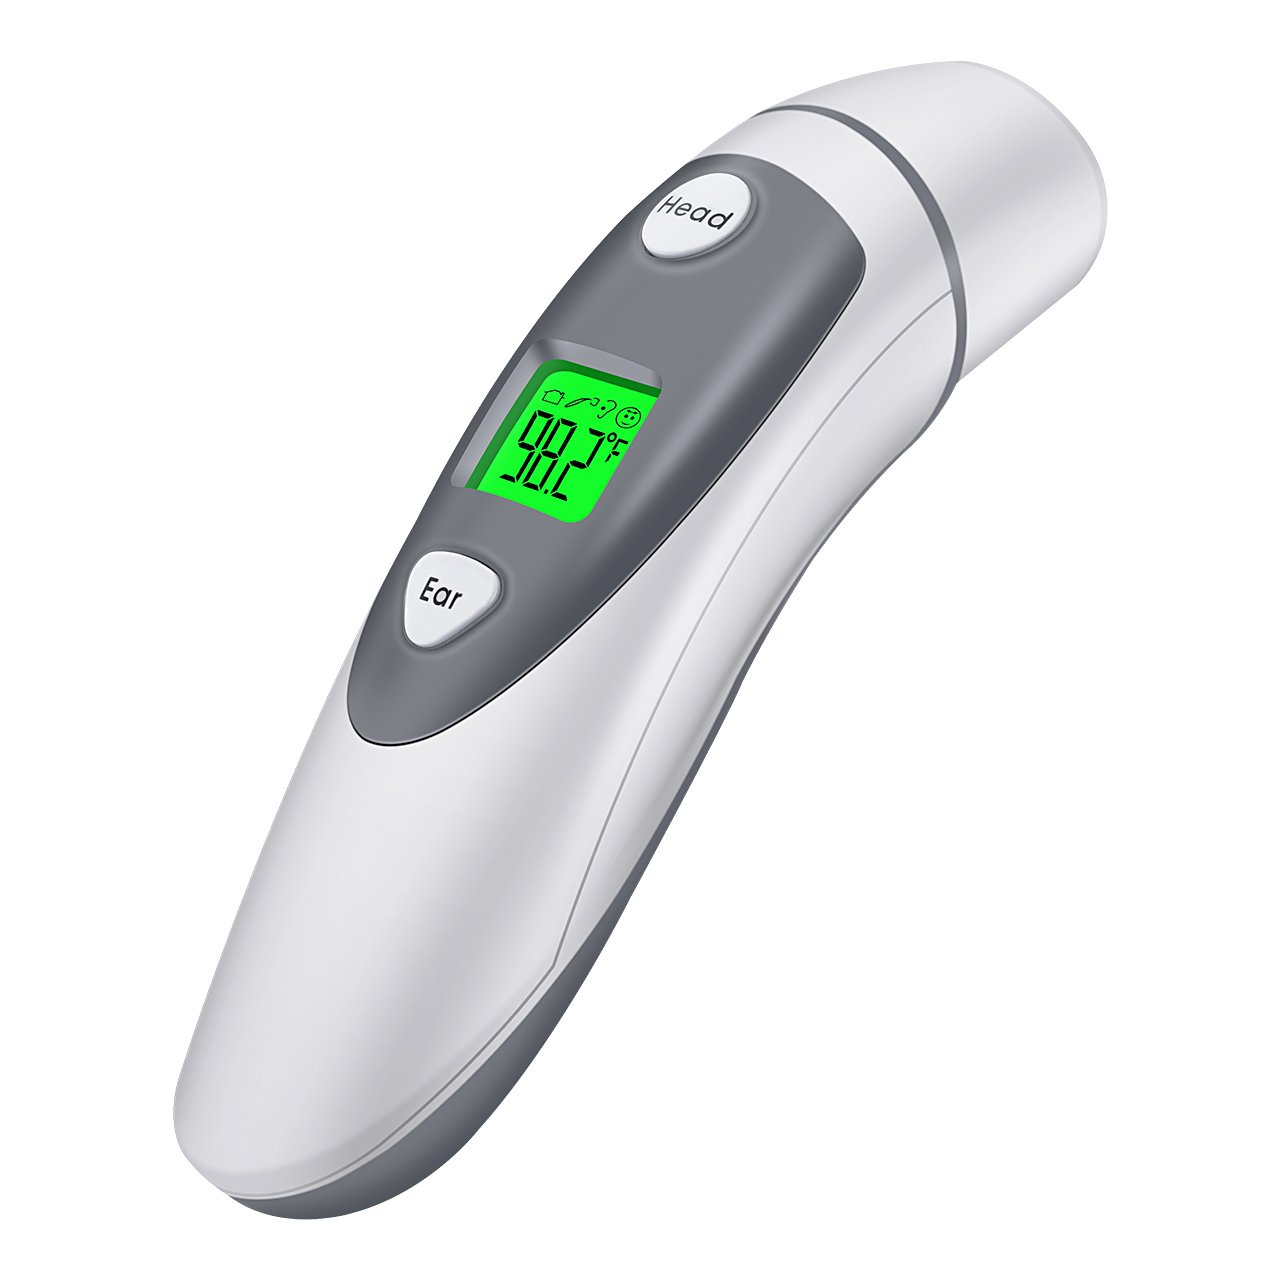 Habor Medical Forehead Thermometer Ear Thermometer Instant Read IR Clinical Thermometer with LED Backlit, Fever Alarm and Memory Function